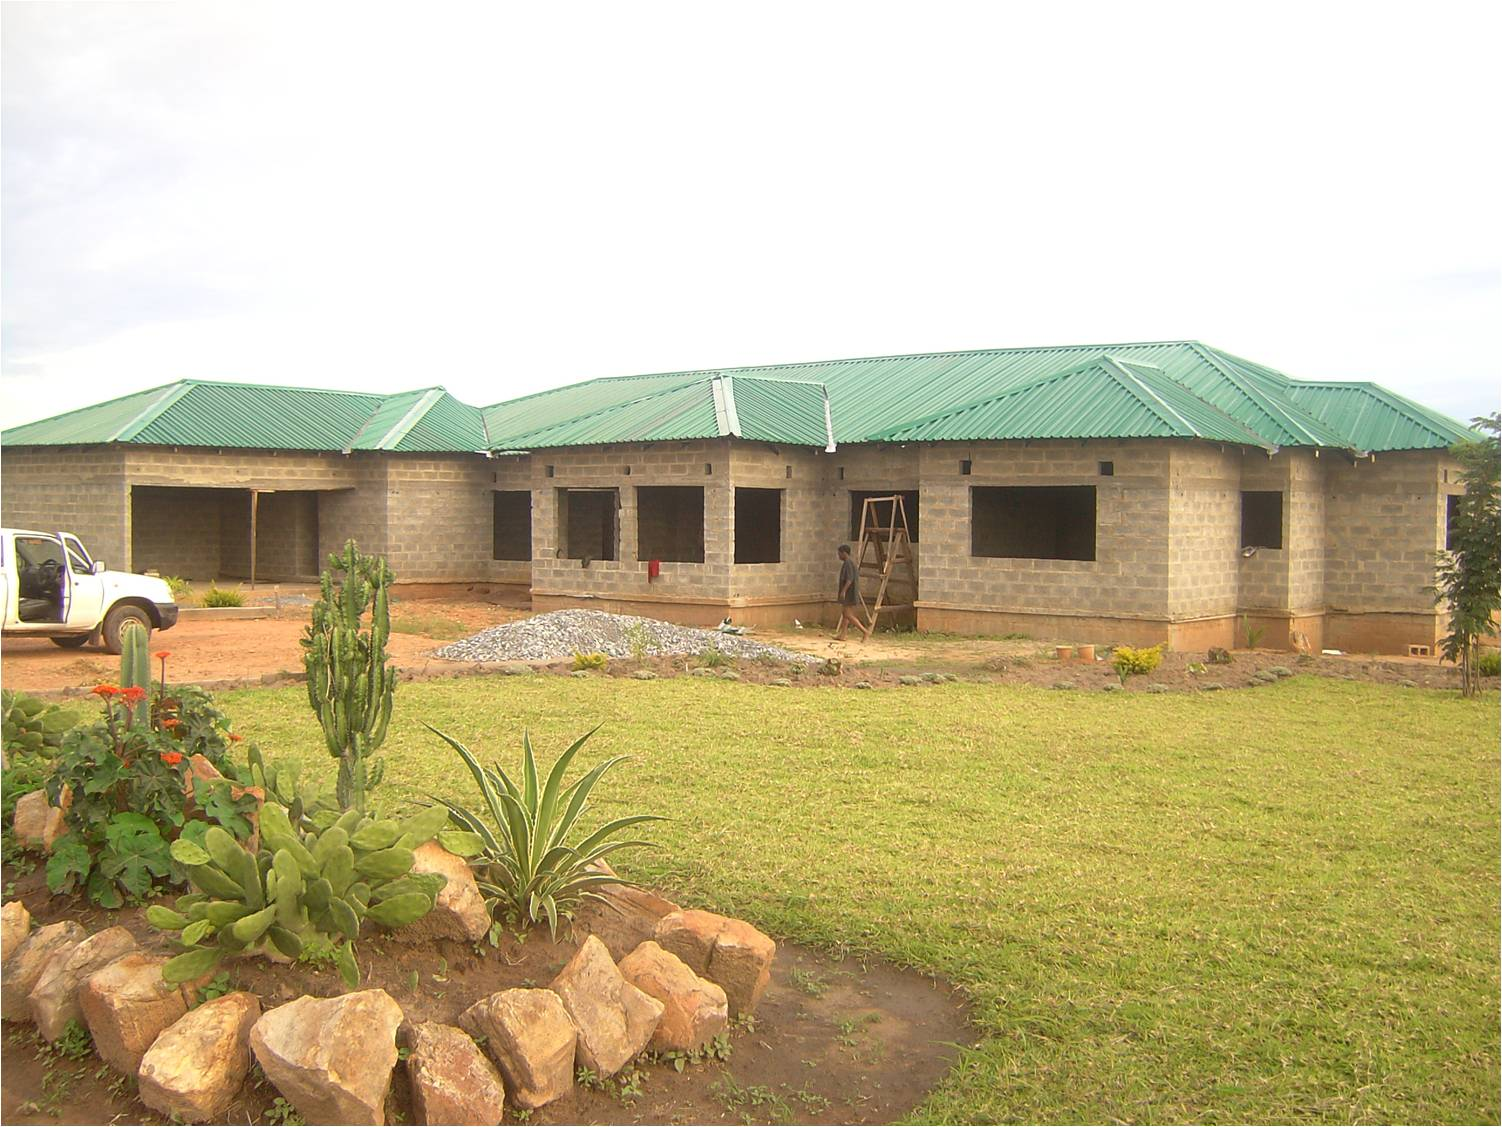 Incomplete house for sale ndola zambia md2438889 for House pictures for sale